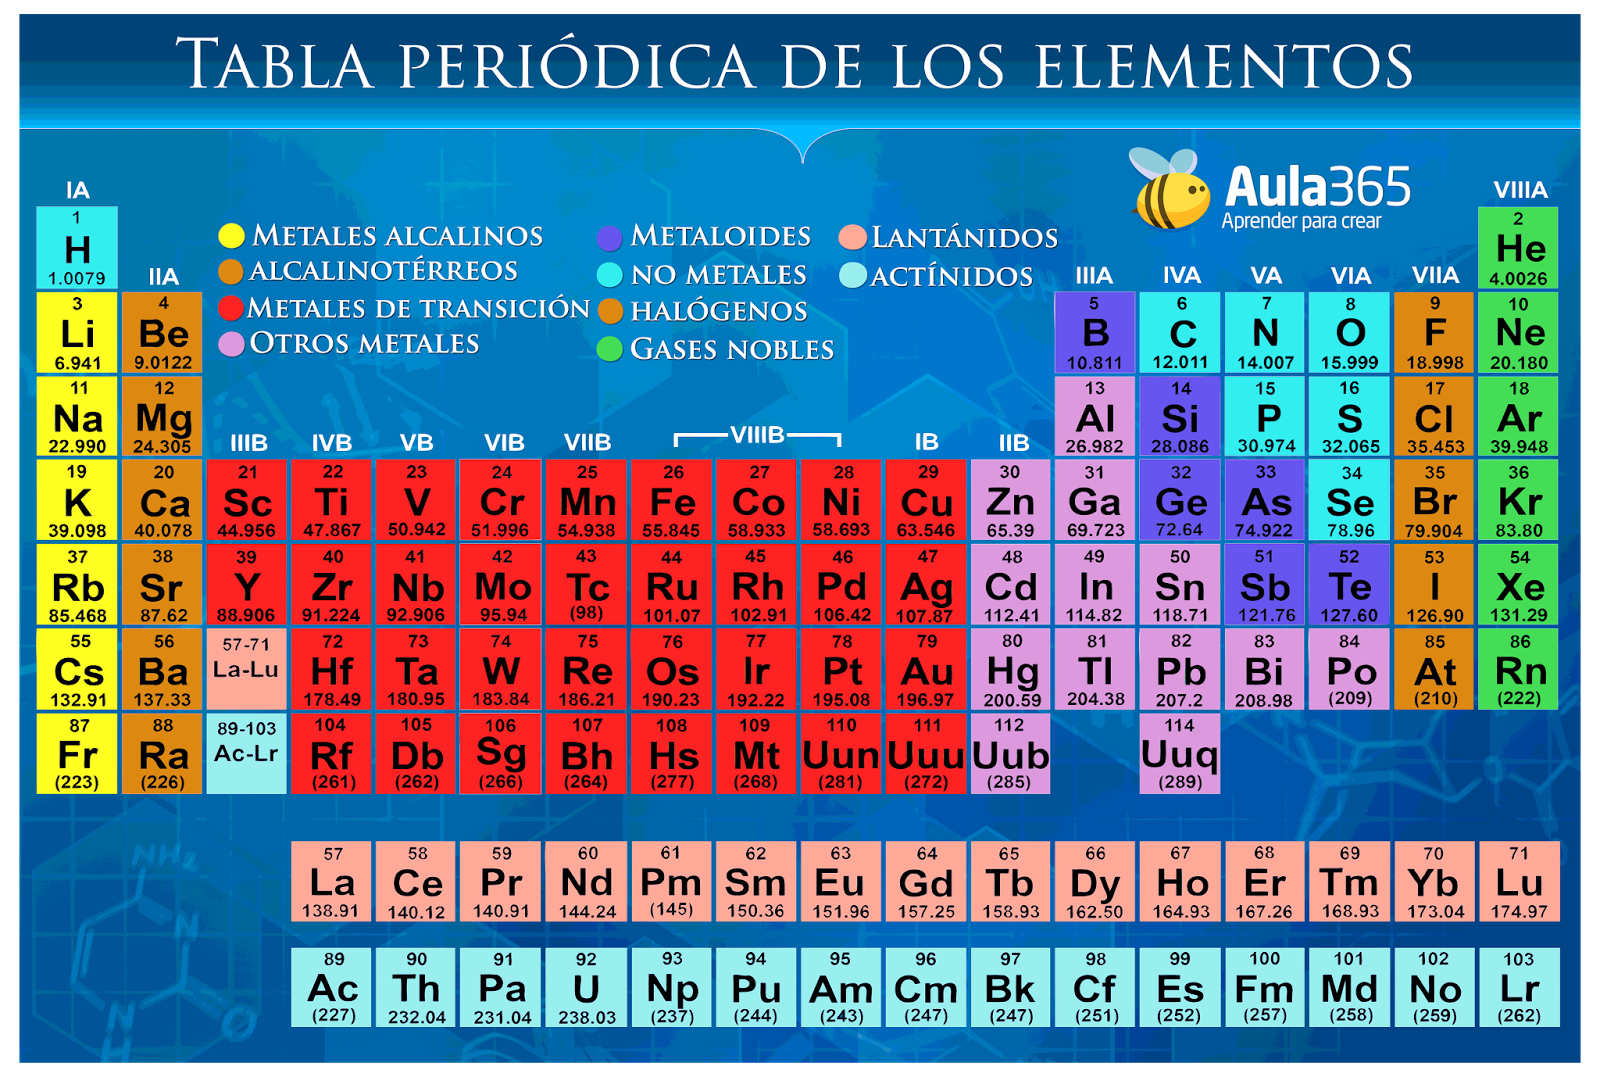 Tabla periodica metales solidos choice image periodic table and tabla periodica de los elementos solidos liquidos y gaseosos images tabla periodica metales solidos gallery periodic urtaz Image collections